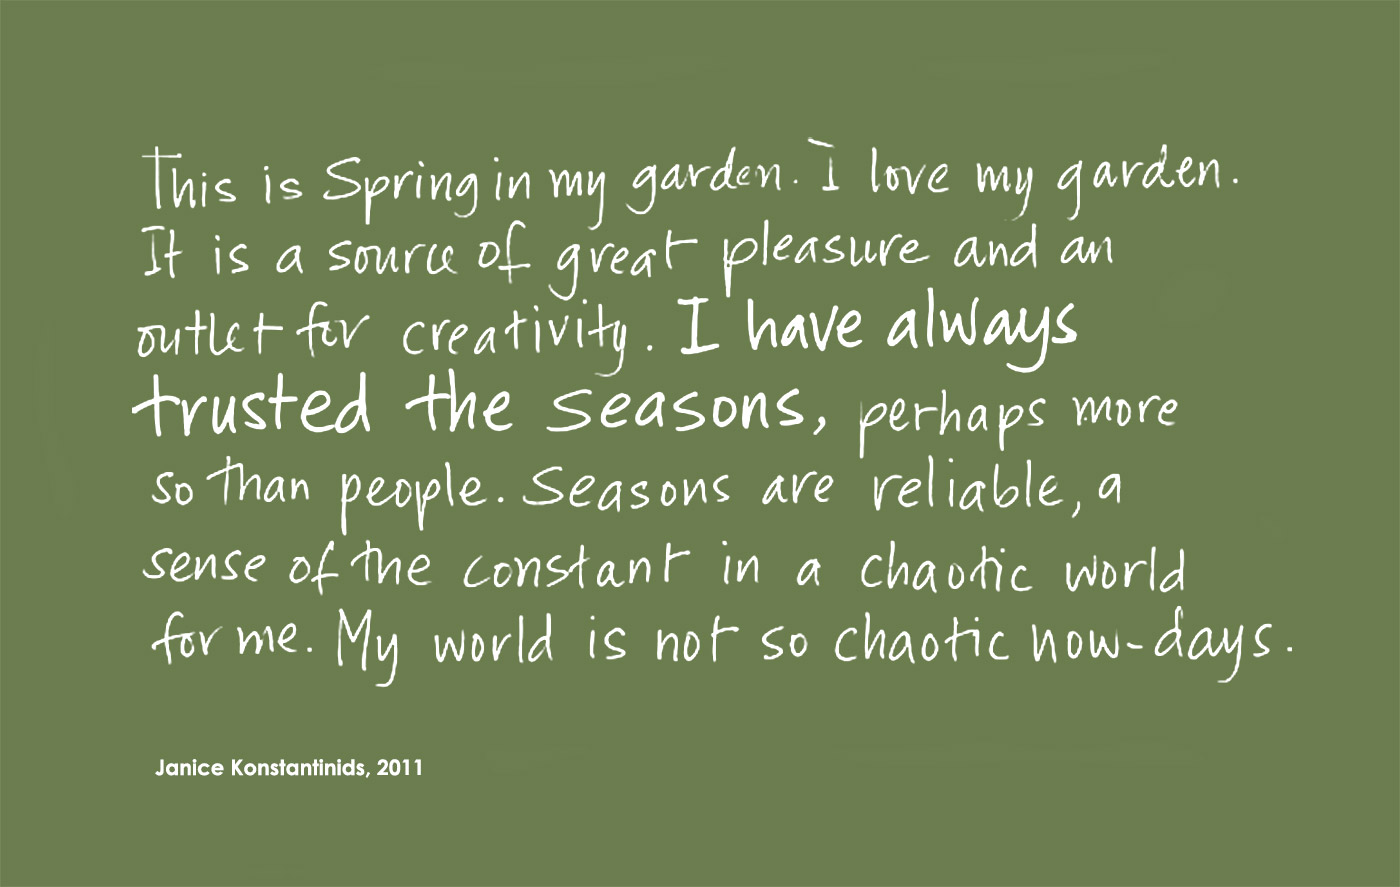 Exhibition graphic of black handwritten text on a beige background reads: 'This is Spring in my garden. I love my garden. It is a source of great pleasure and an outlet for creativity. I have always trusted the seasons, perhaps more so than people. Seasons are reliable, a sense of the constant in a chaotic world for me. My world is not so chaotic now-days', attributed to 'Janice Konstantindis, 2011'. - click to view larger image